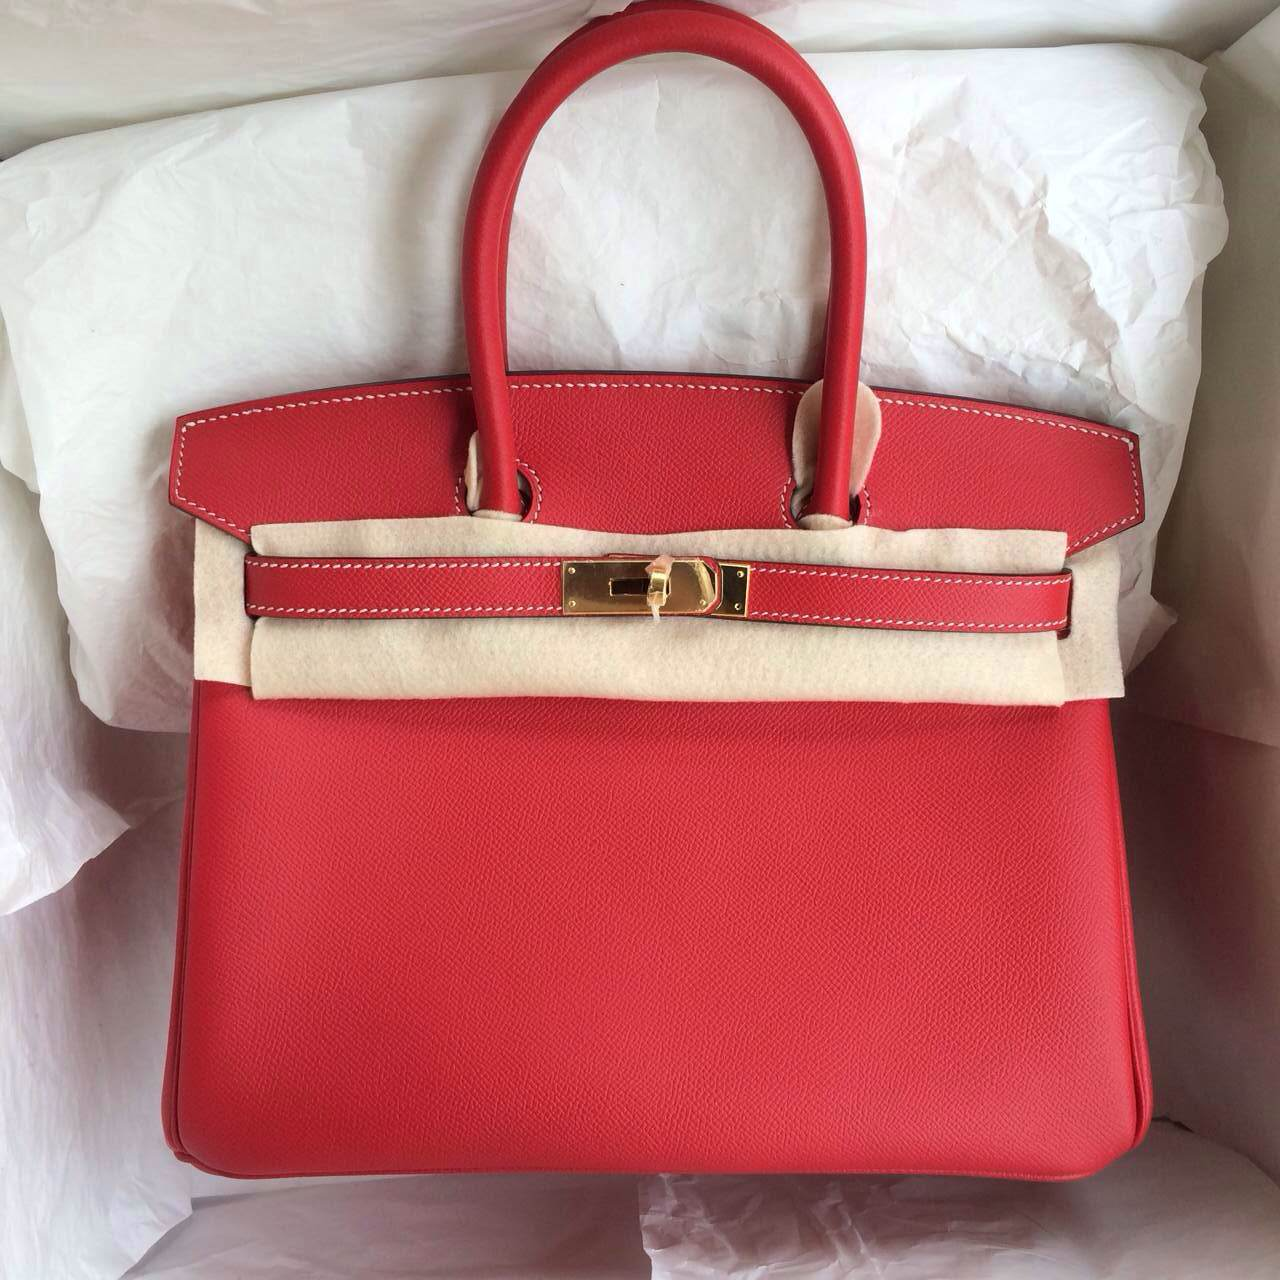 Q5 Candy Red/inner 7Q Cribe Blue France Epsom Leather Birkin Bag Gold Hardware